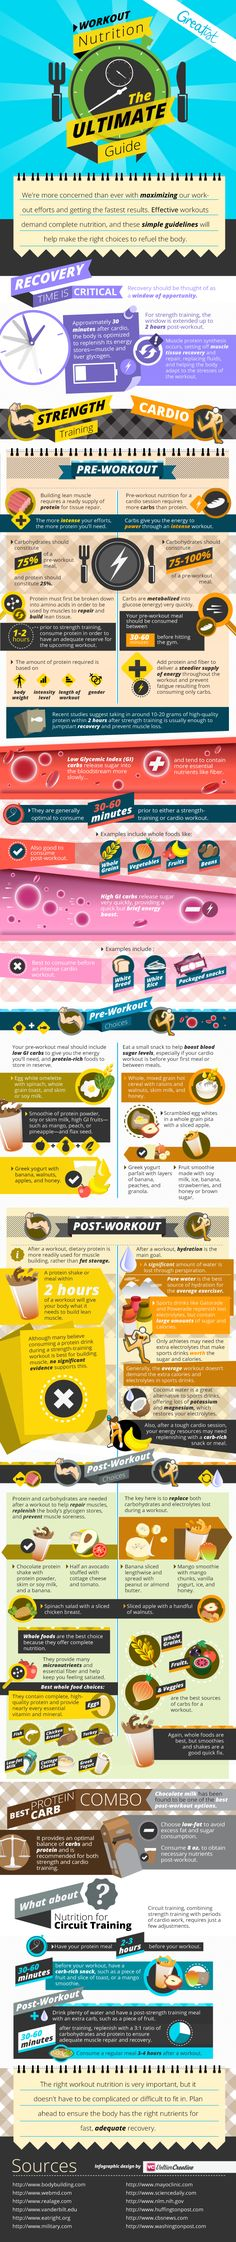 Pre/Post Workout for cardio and strength training http://www.weightlosejumpstart.org/how-to-start-losing-weight-for-beginners/